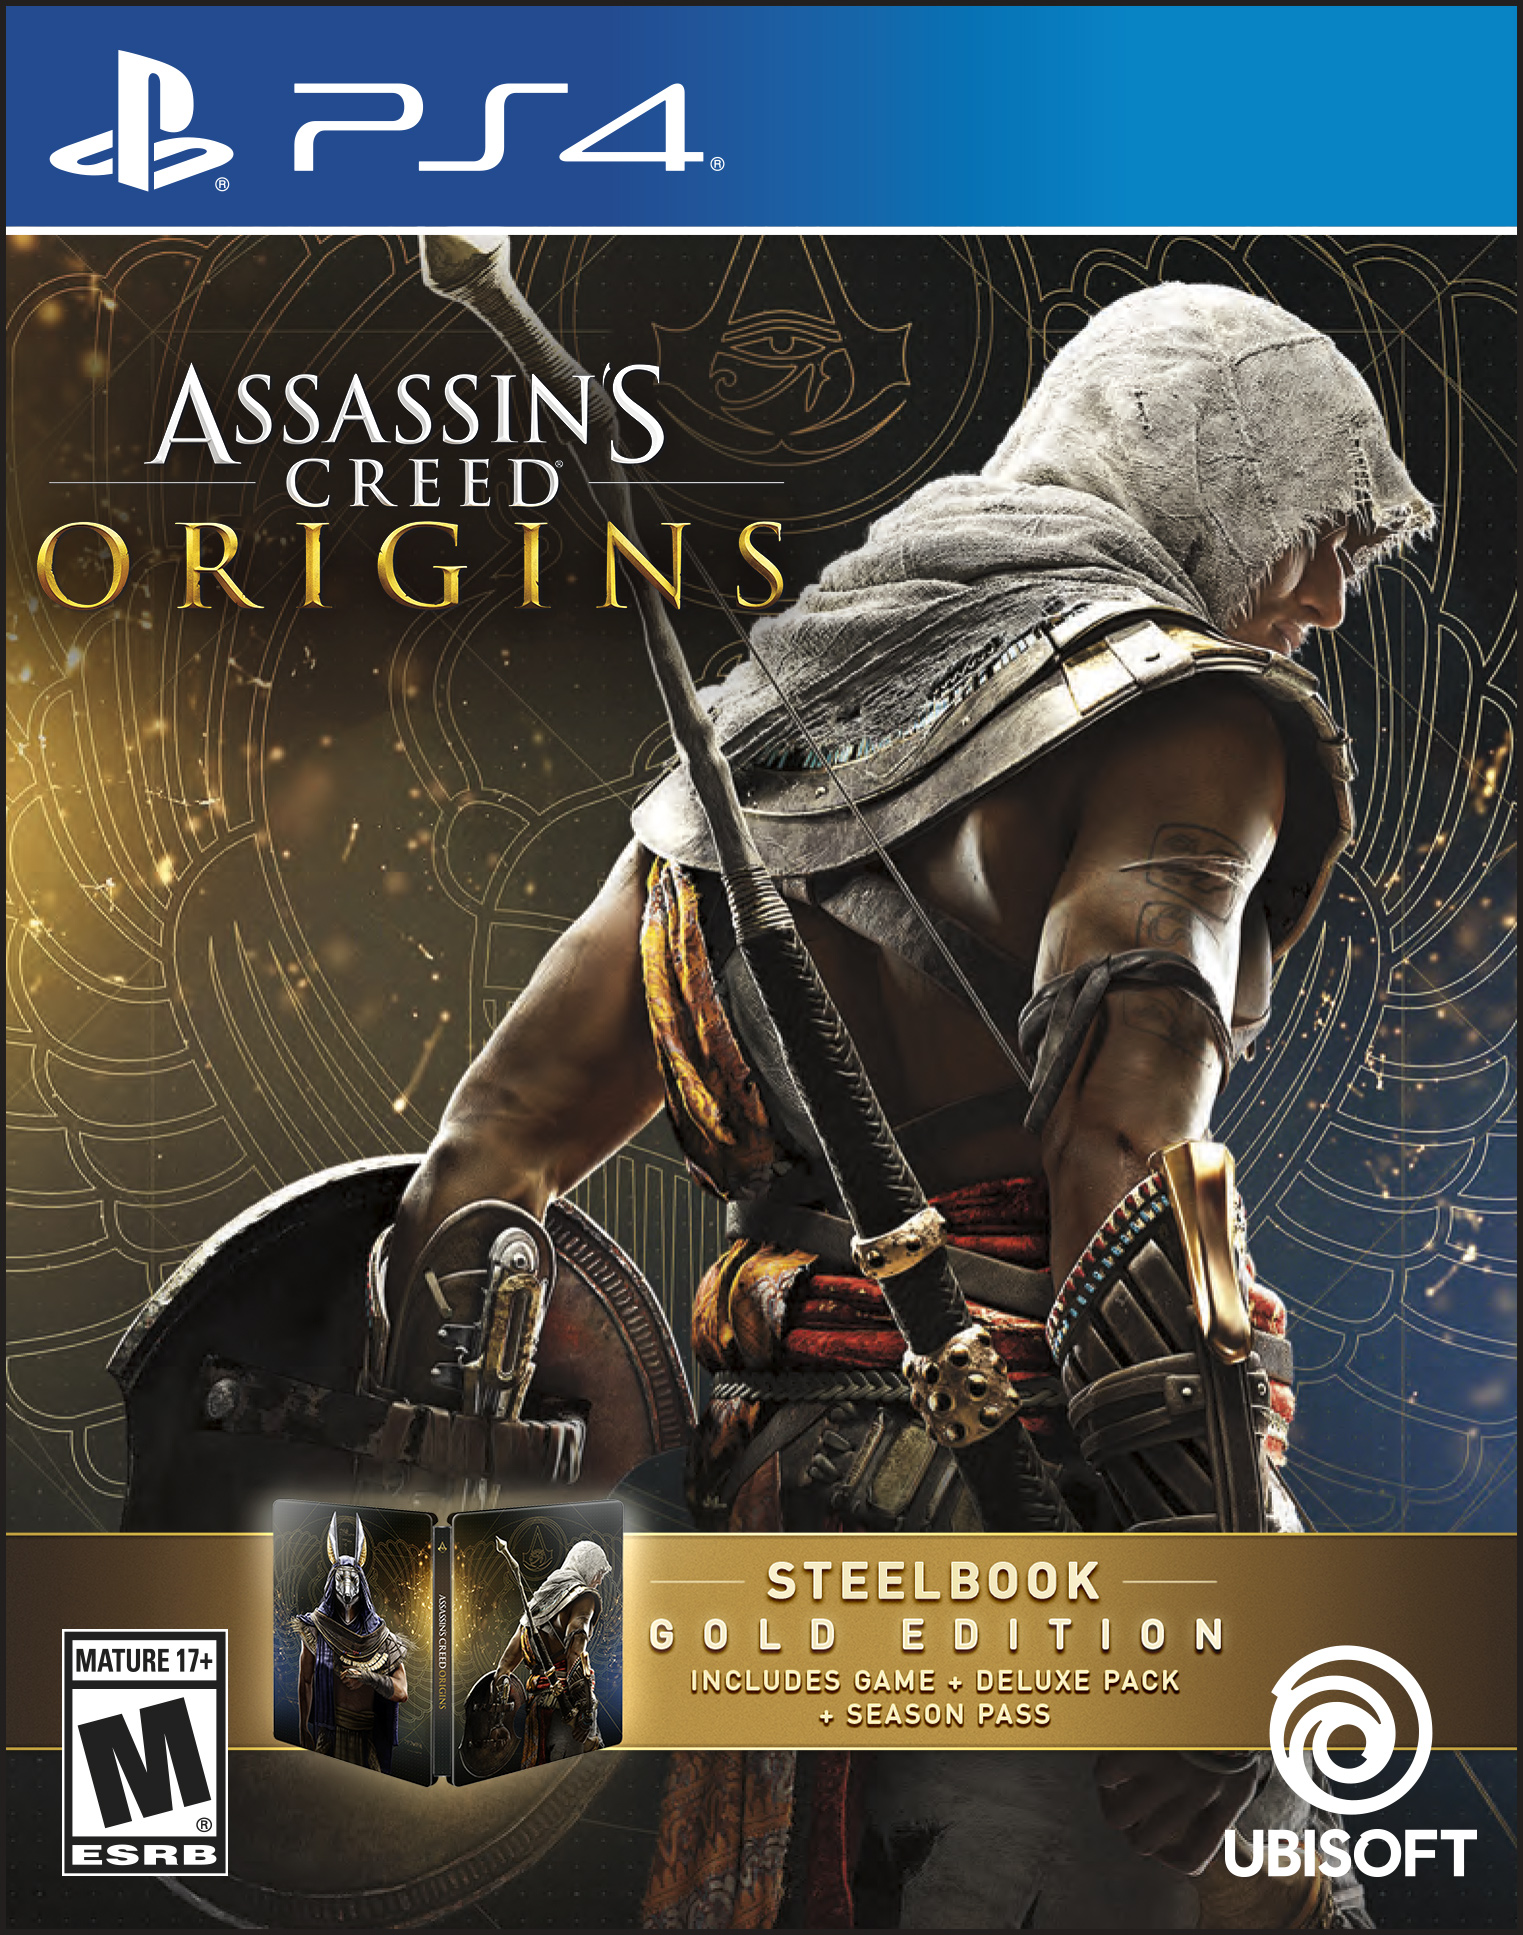 Assassin's Creed: Origins Steelbook Gold Edition, Ubisoft, PlayStation 4, 887256028527 by Ubisoft